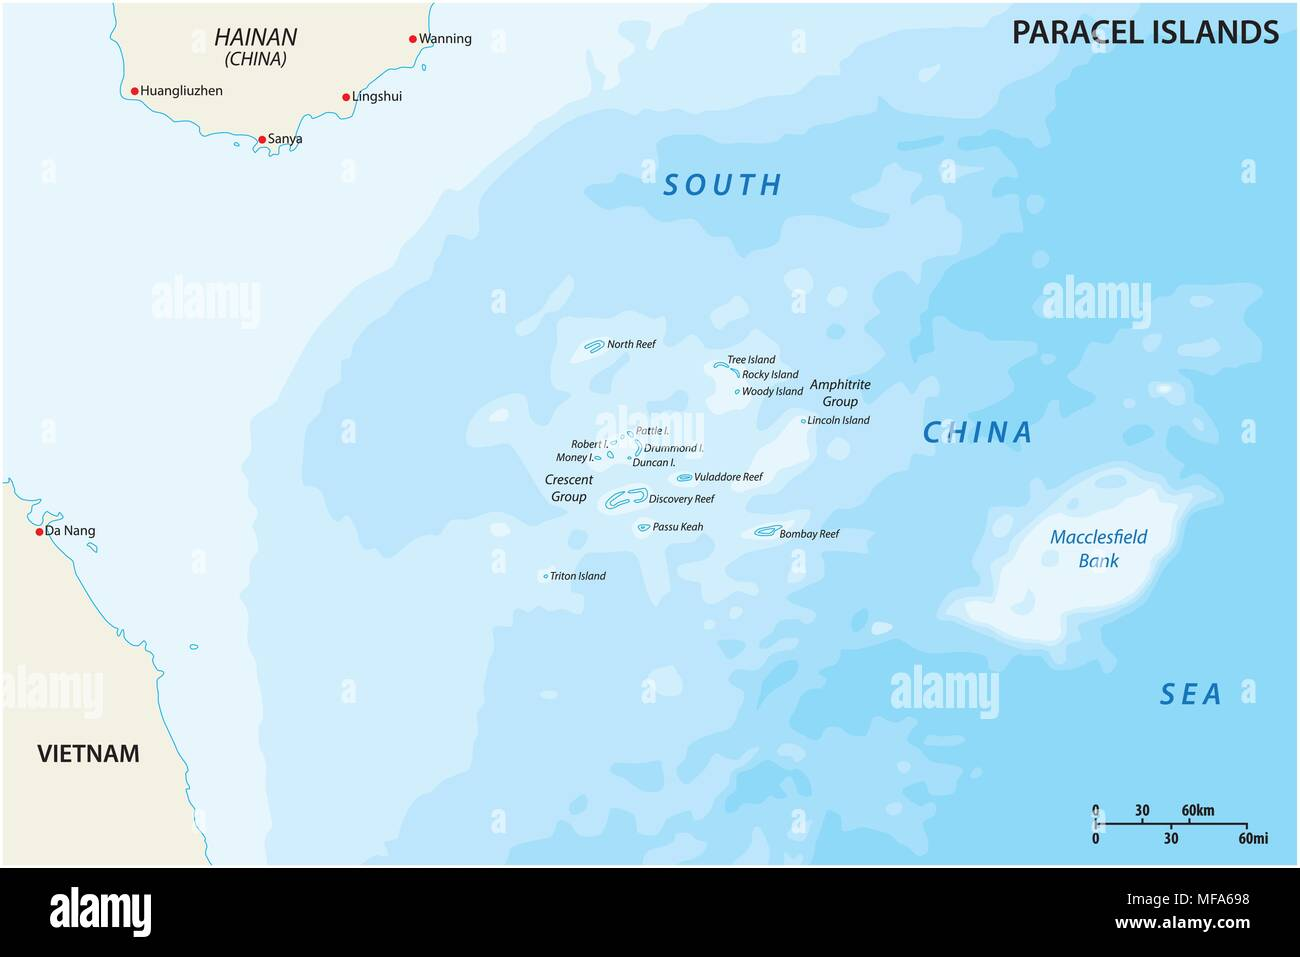 Map of the Paracel Islands controlled by China in the South China Sea - Stock Image